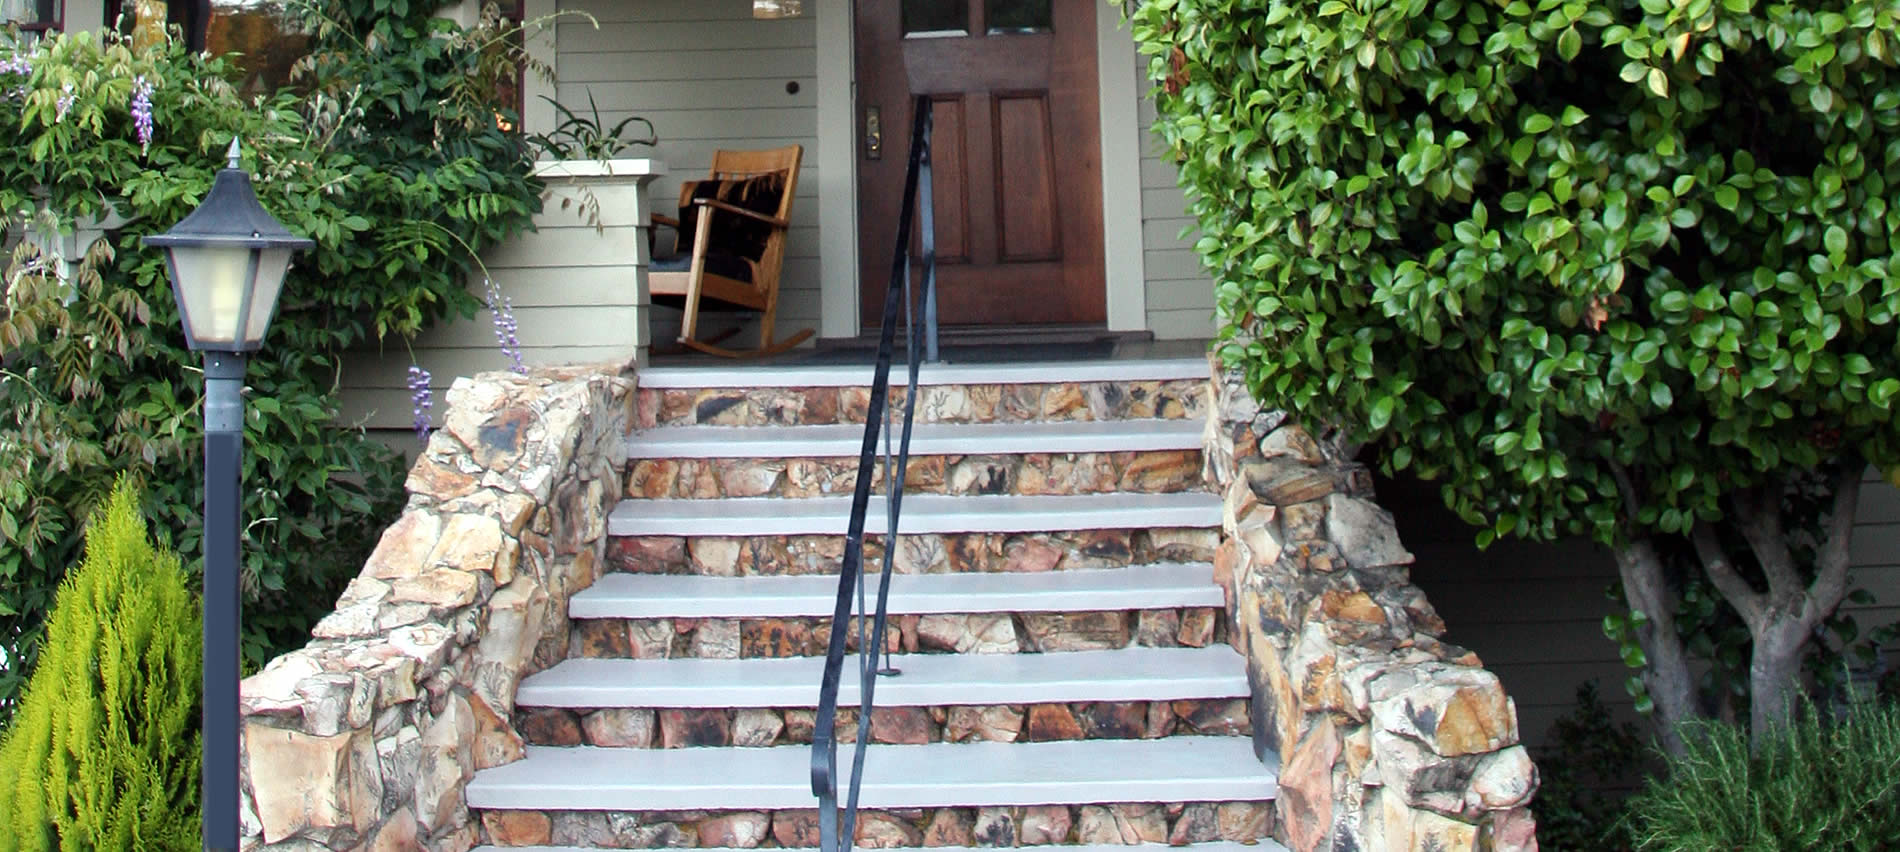 about eureka street inn and the stone steps that lead to the expansive sitting porch